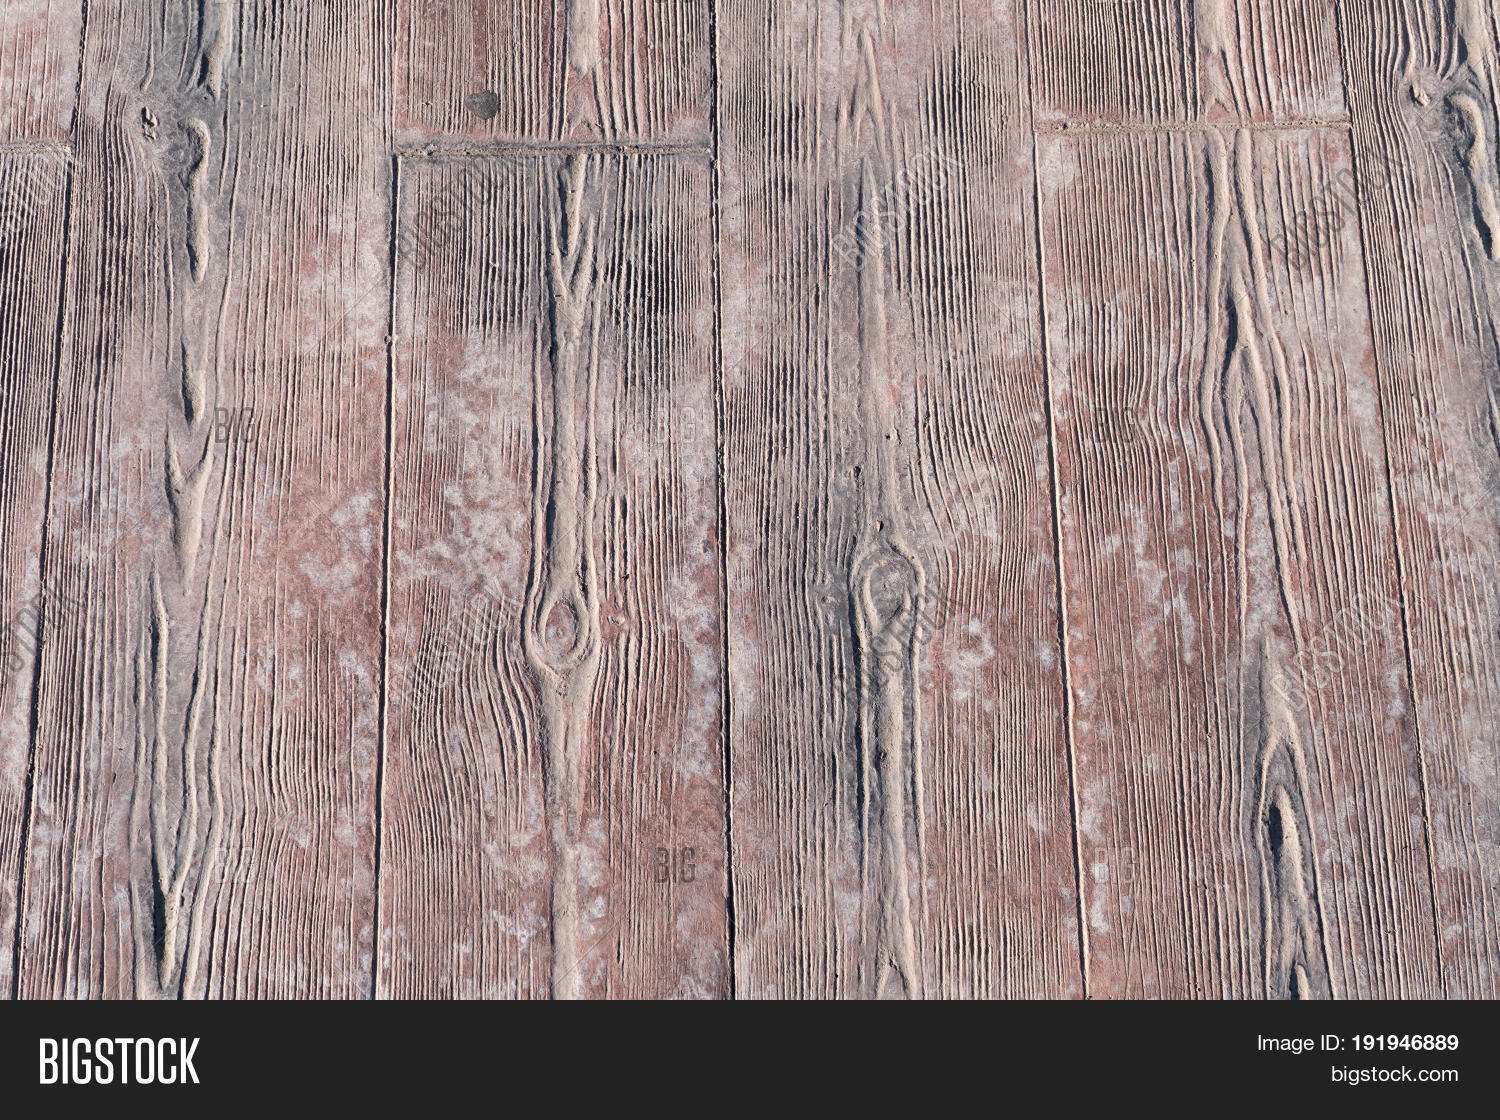 Stamped Concrete Image Photo Free